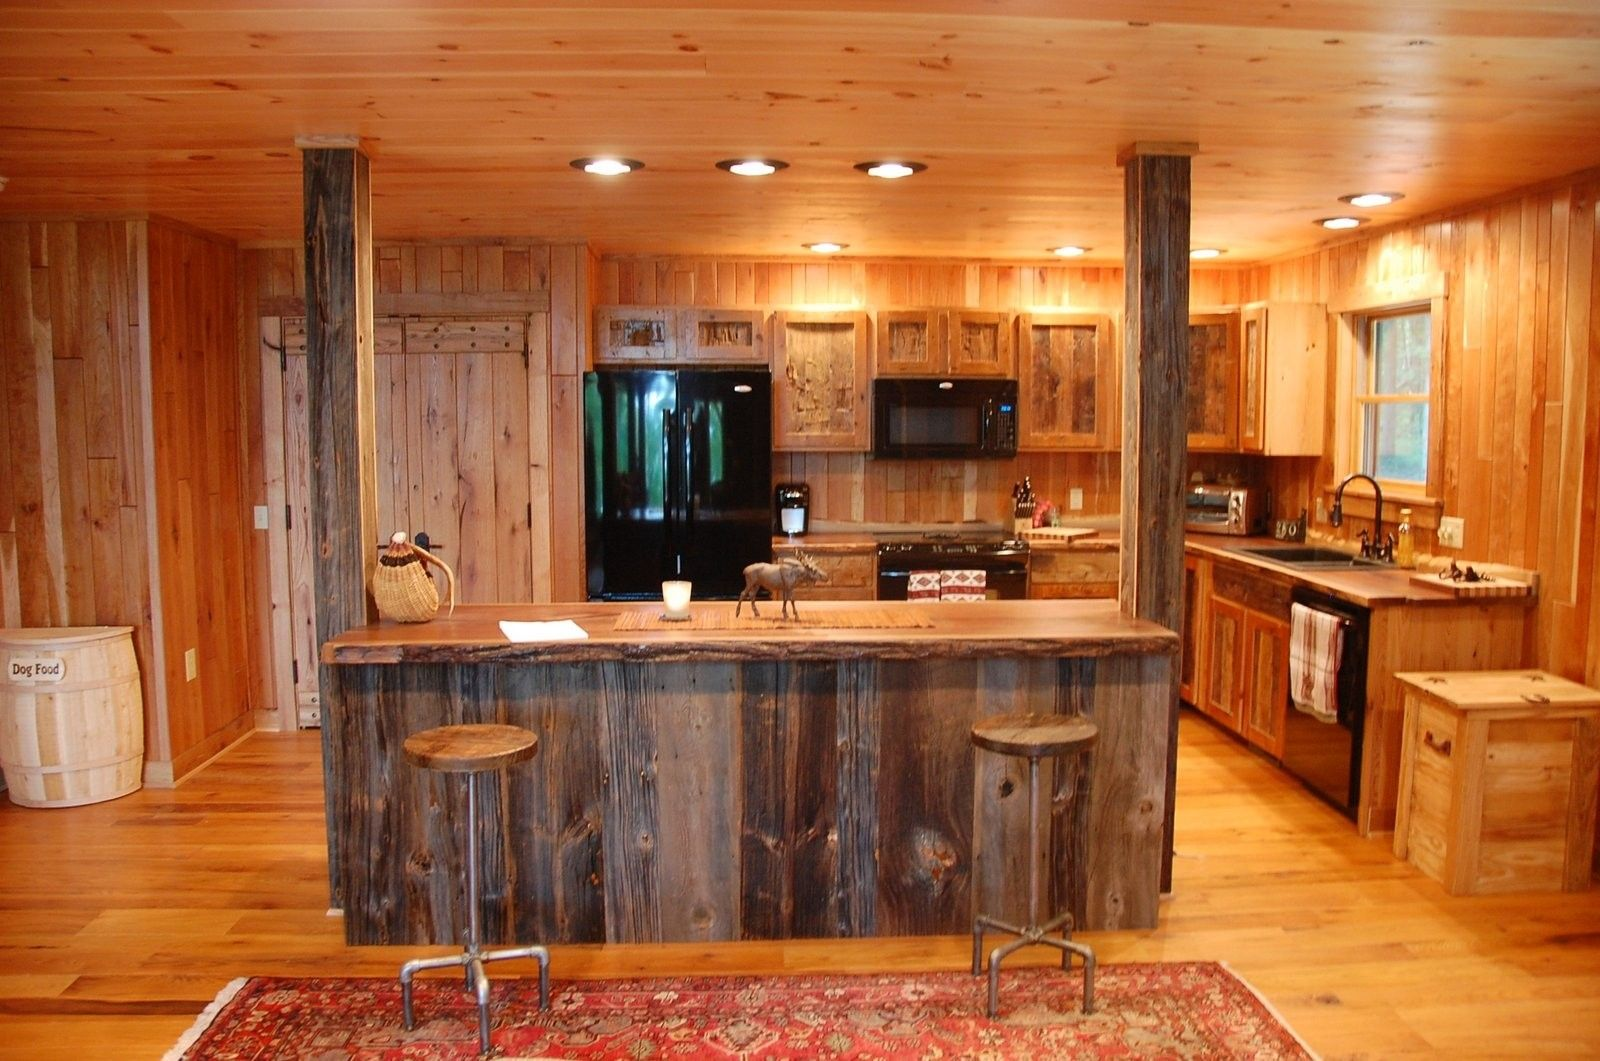 Custom Rustic Kitchen Cabinets Custom Made Reclaimed Wood Rustic Kitchen Cabinetscorey Morgan